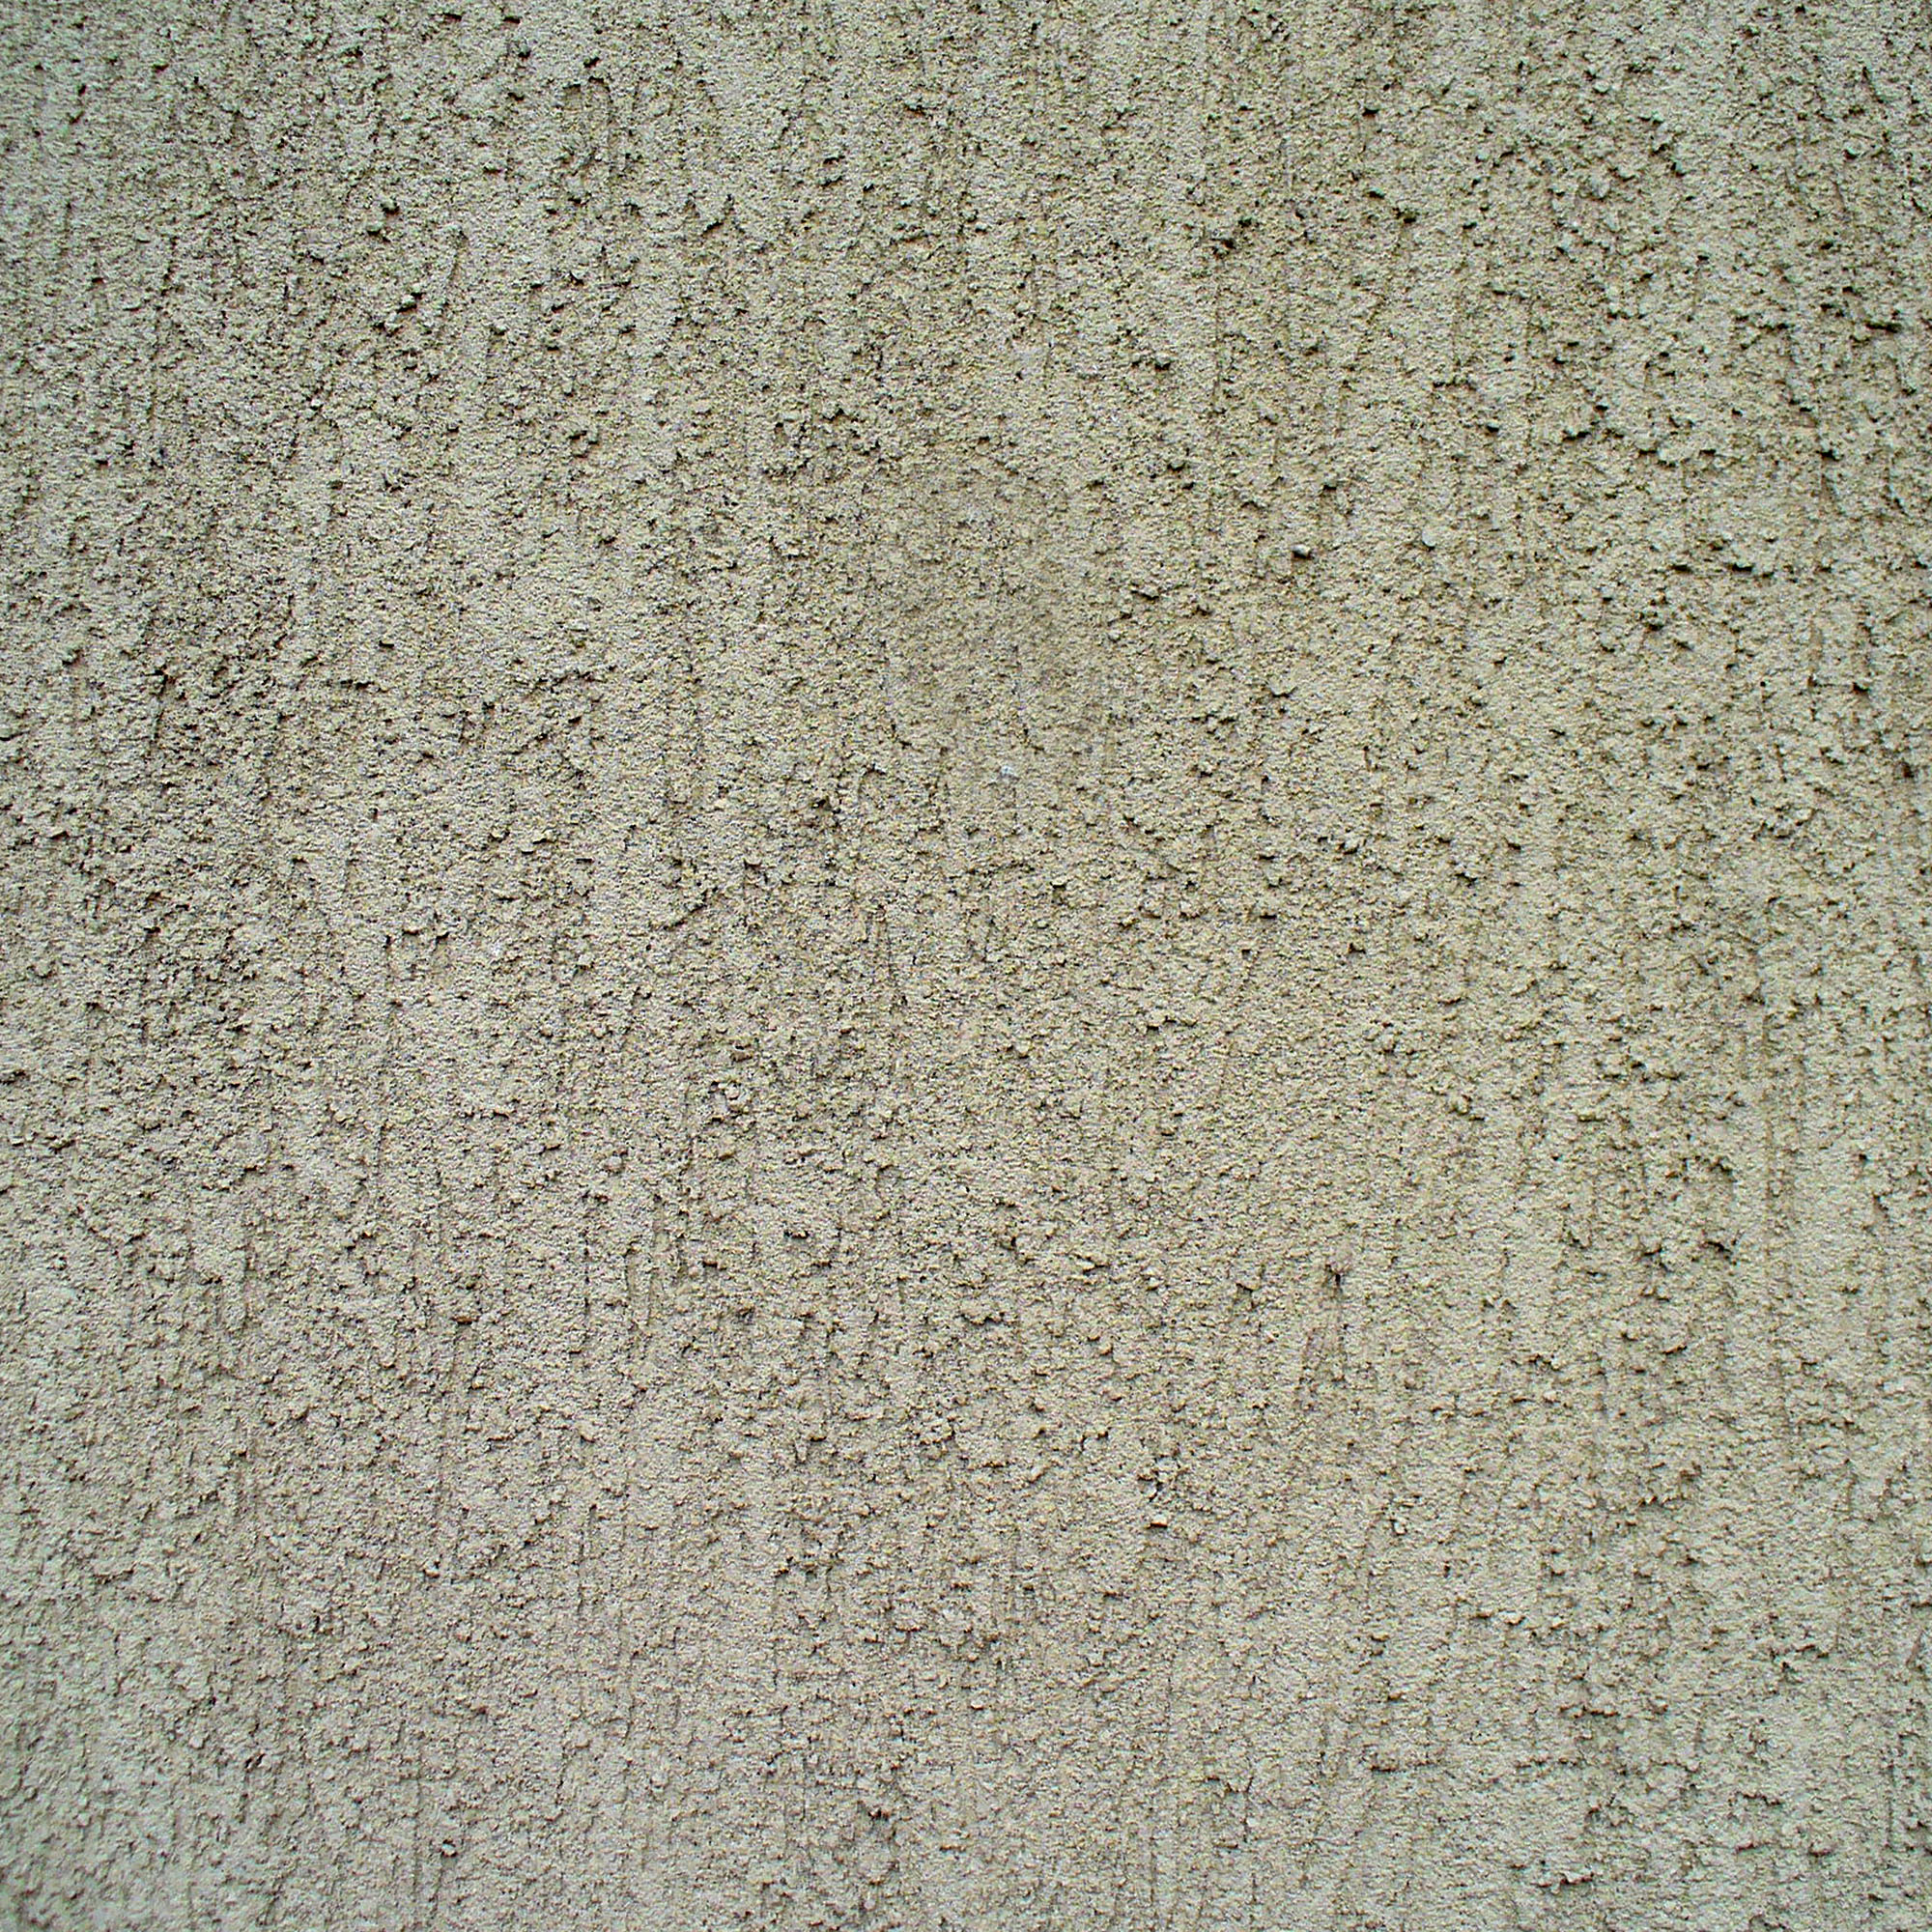 Concrete wall texture 3 download free textures